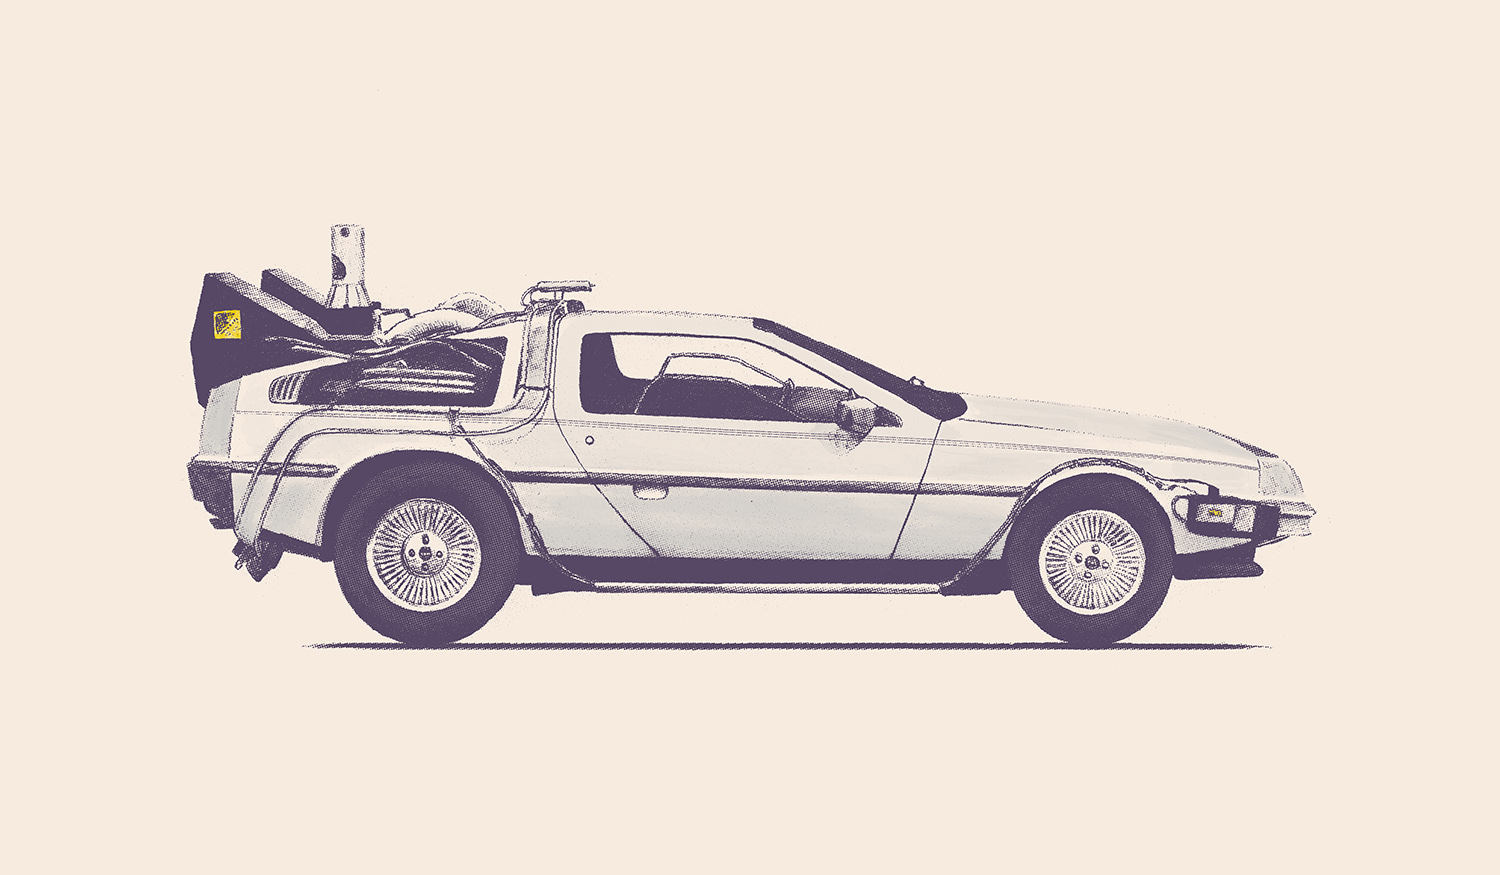 <h20>Delorean</h20><br><br><br>Famous Cars